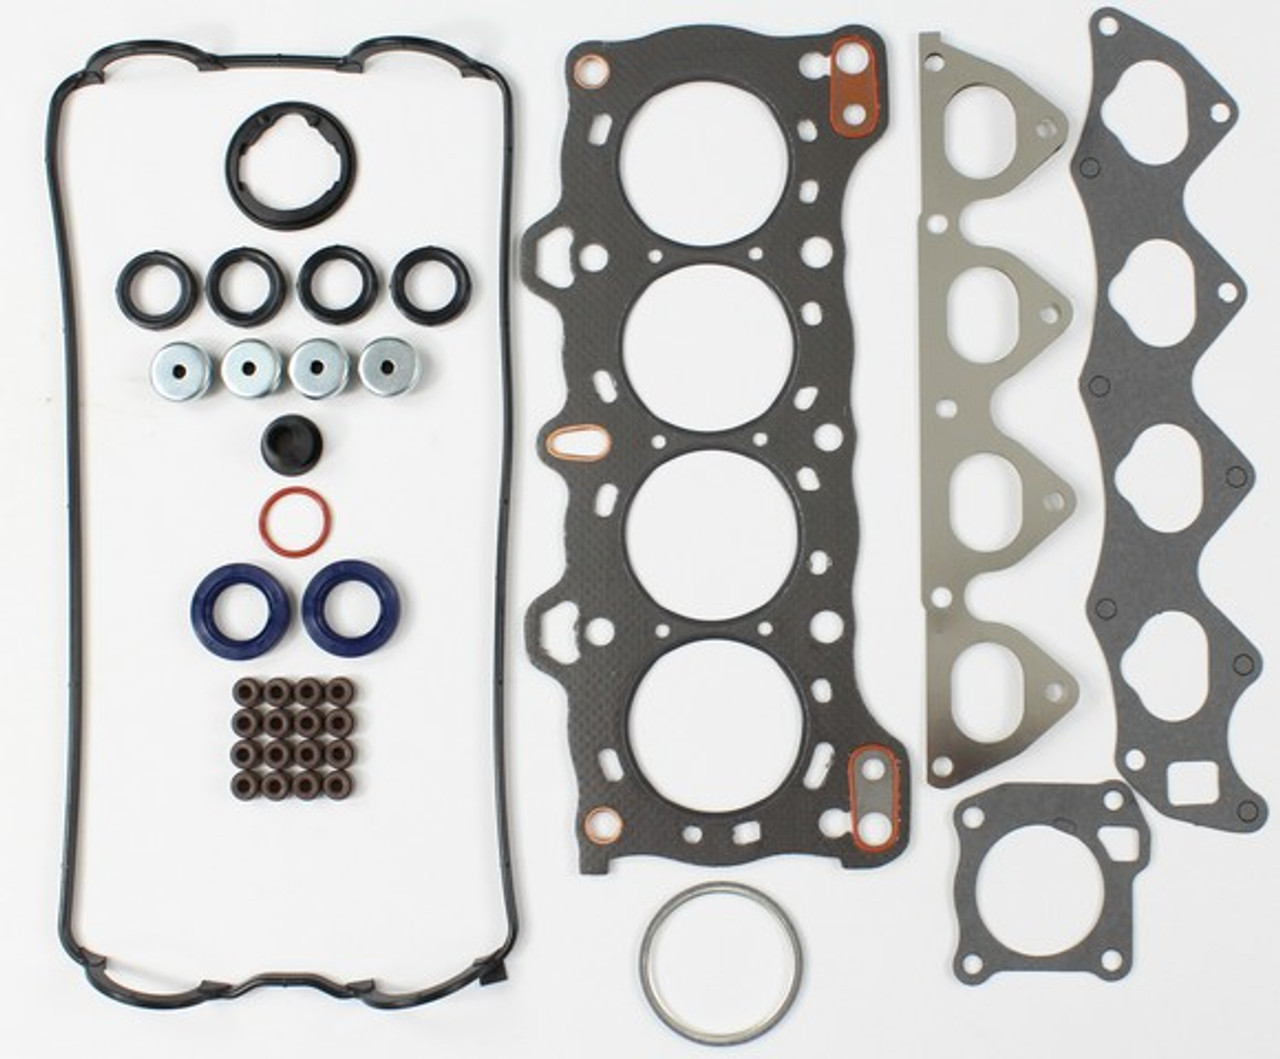 Head Gasket Set 1.6L 1987 Acura Integra - HGS211.2